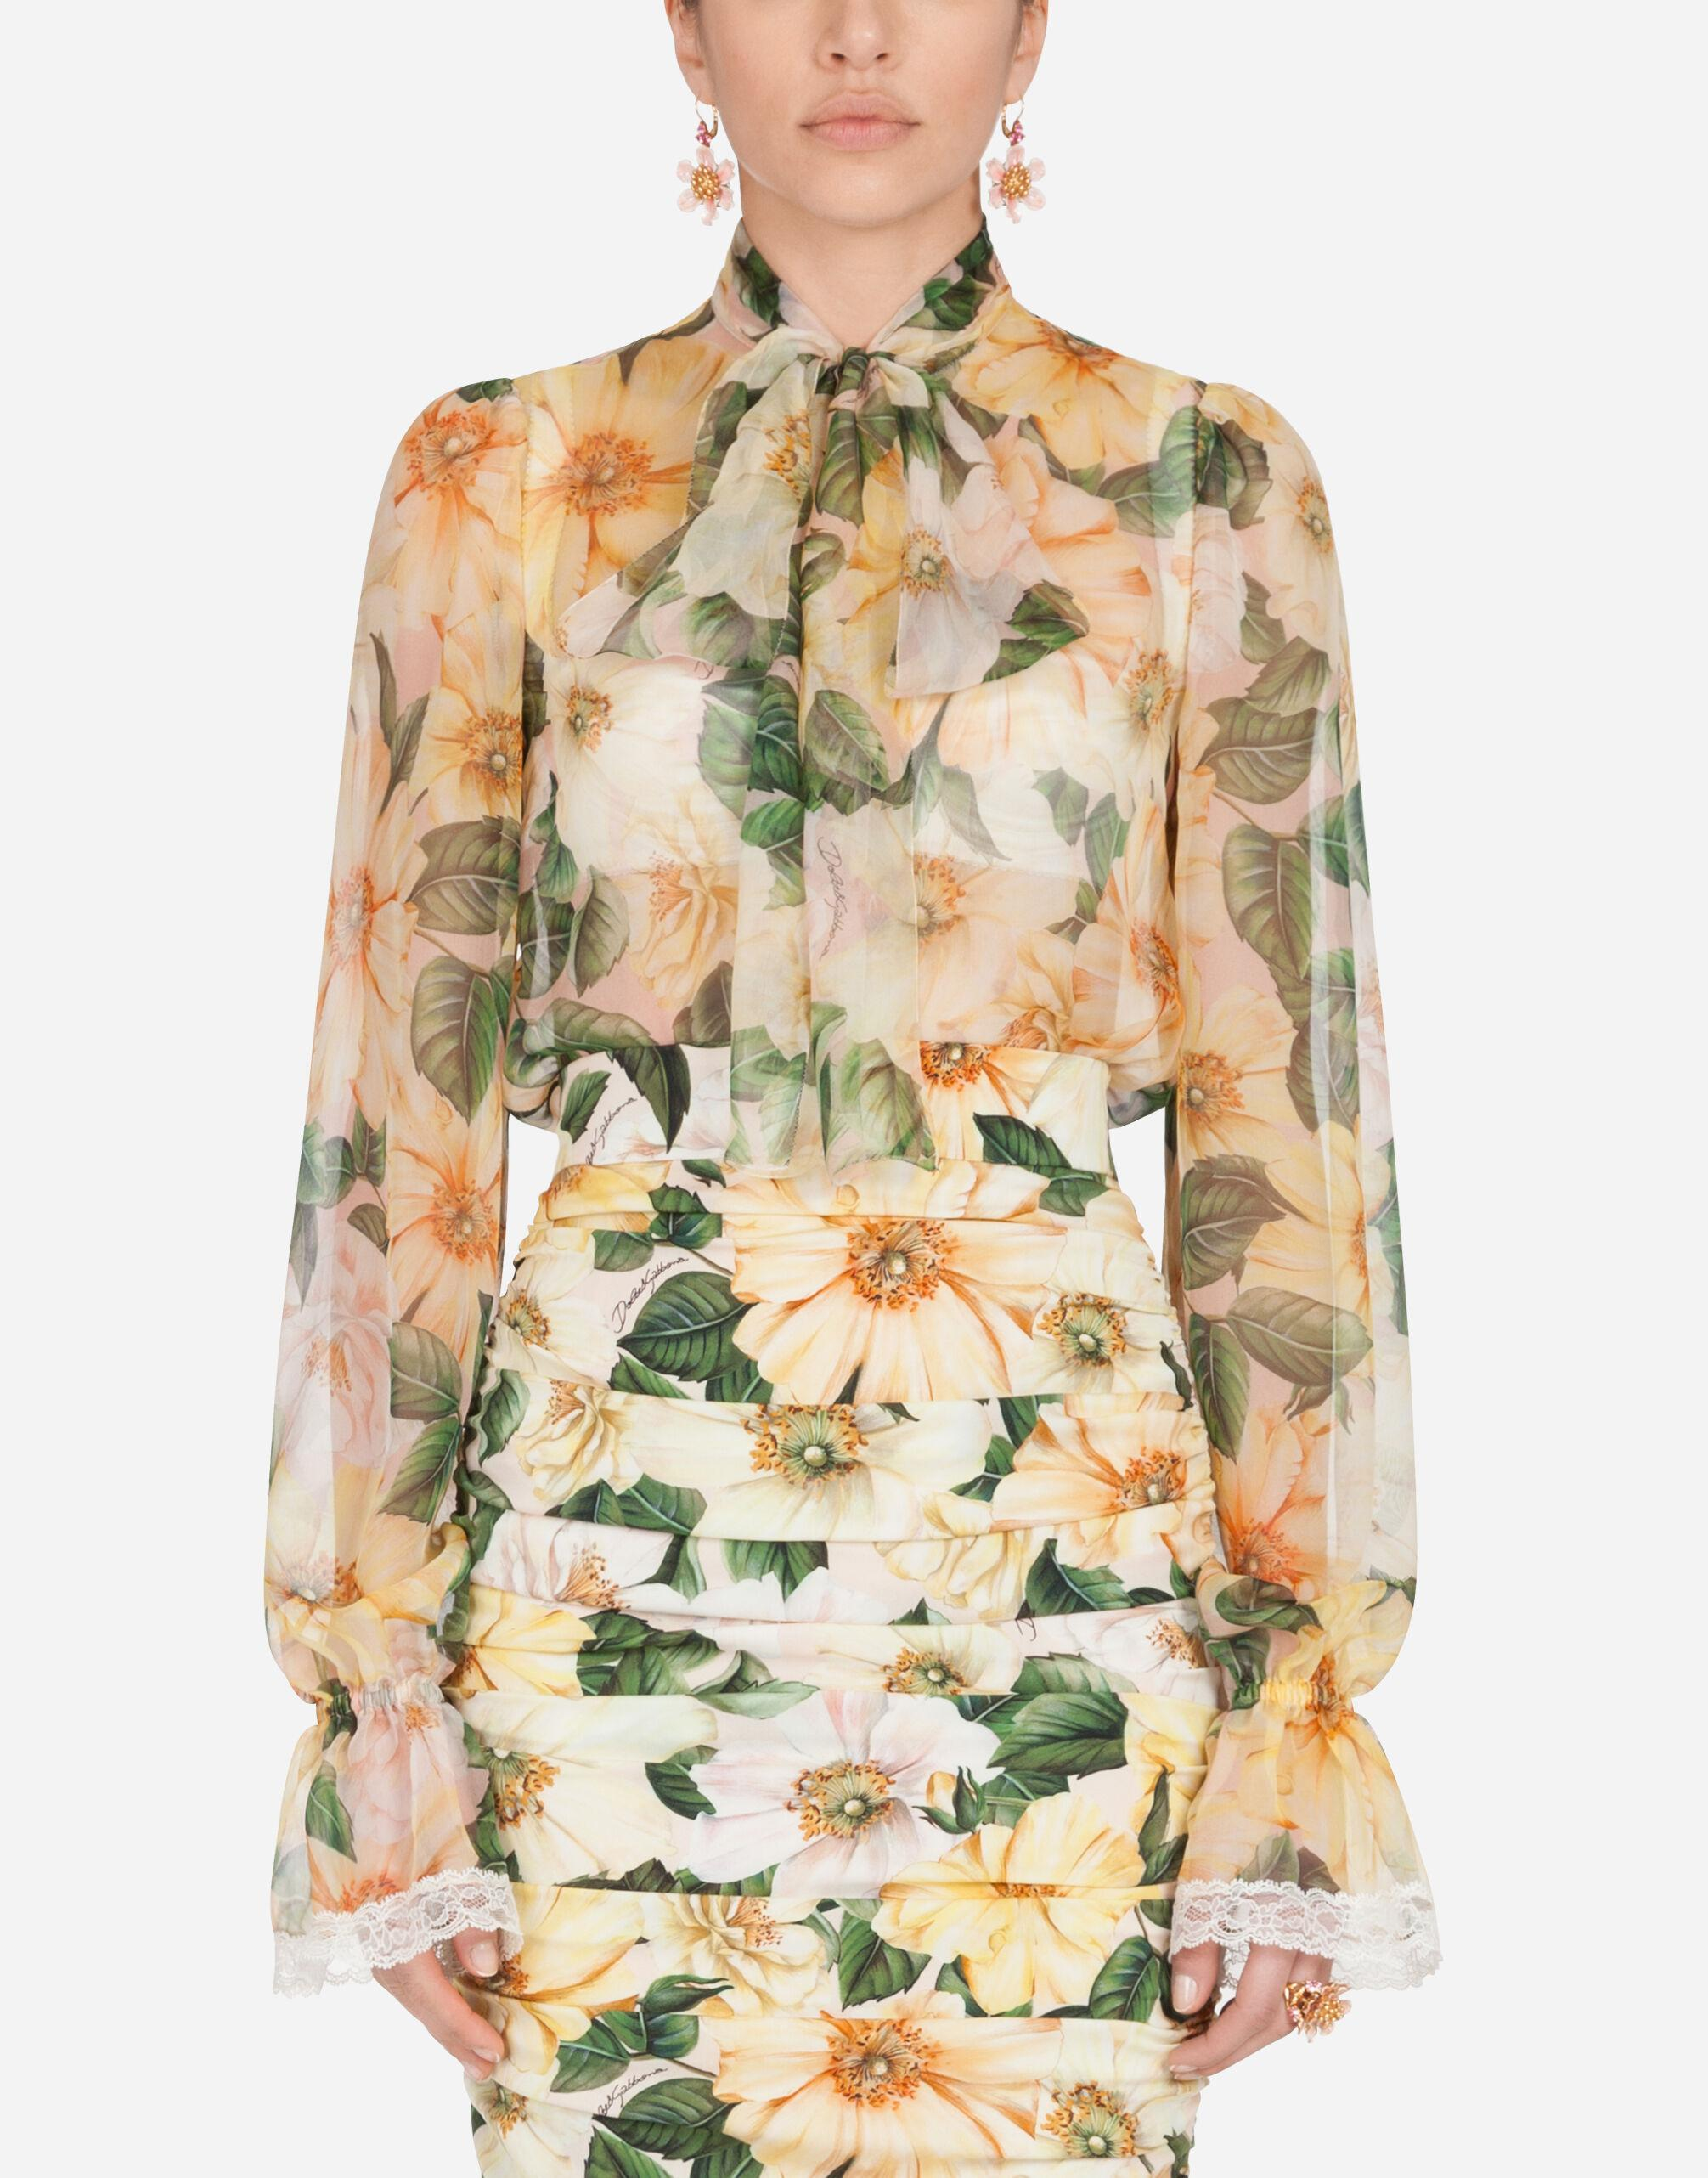 Camellia-print chiffon shirt with pussy bow